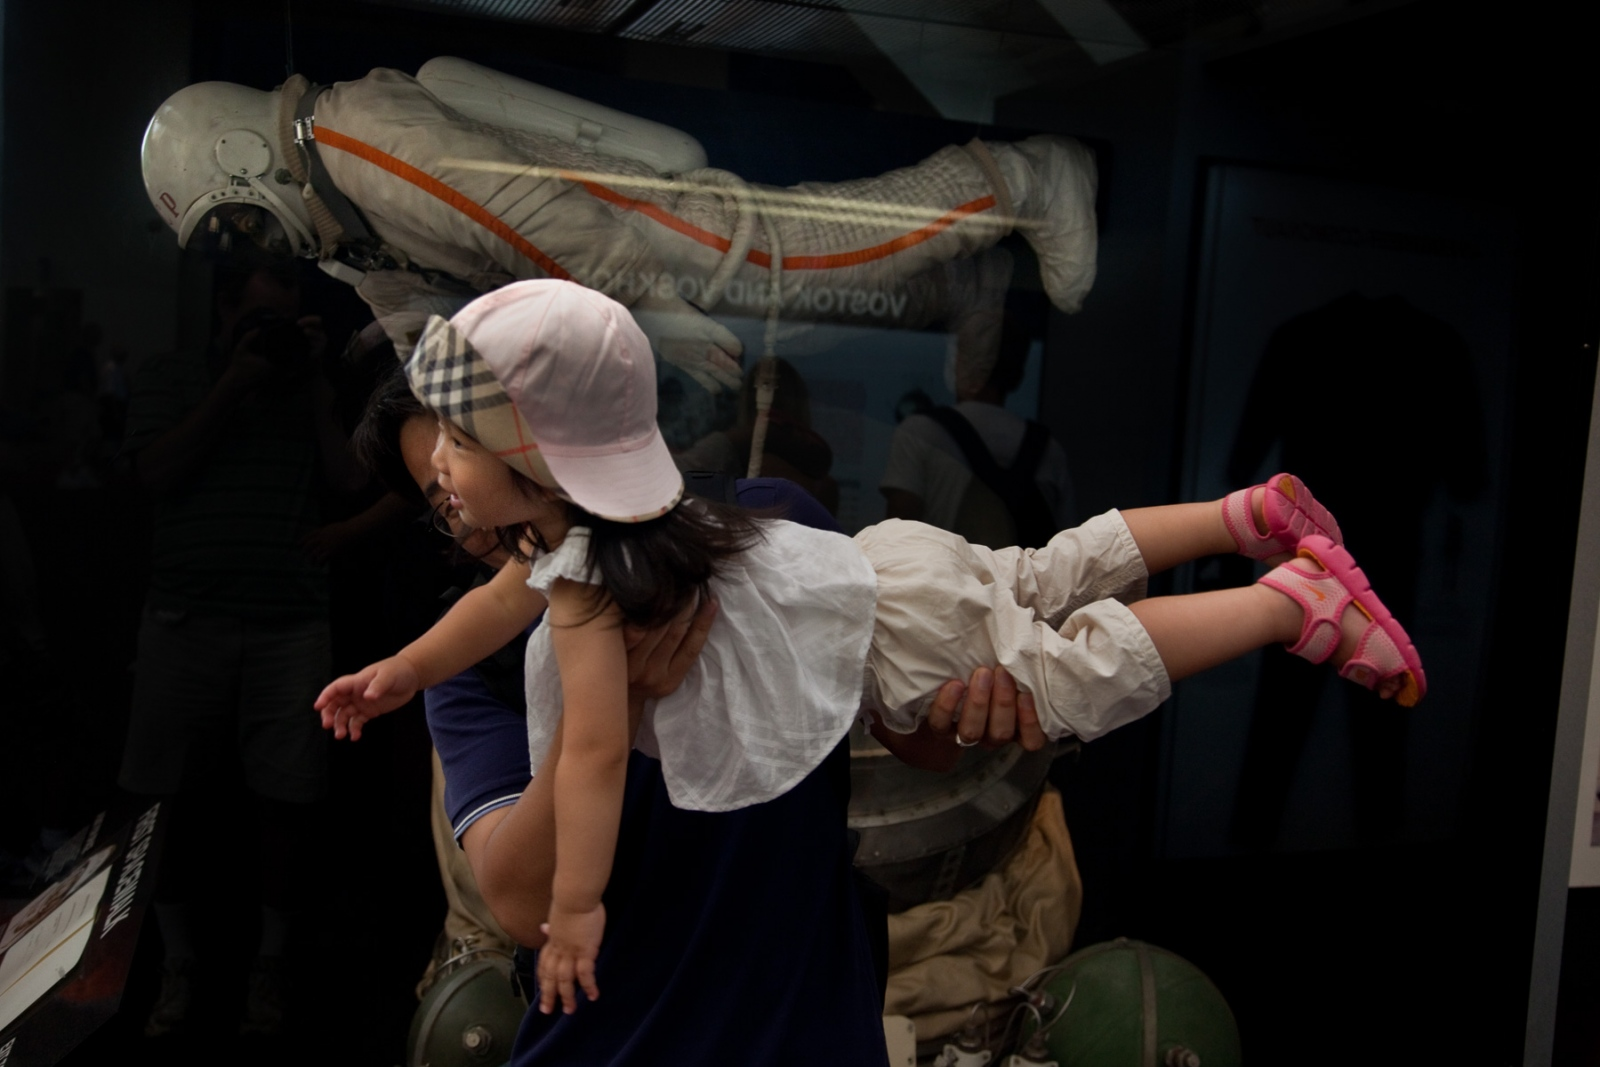 A father shows his daughter what it must feel like to float in space at the Smithsonian Air and Space Museum during the 40th Anniversary of the Apollo 11 mission that landed the first humans on the moon.